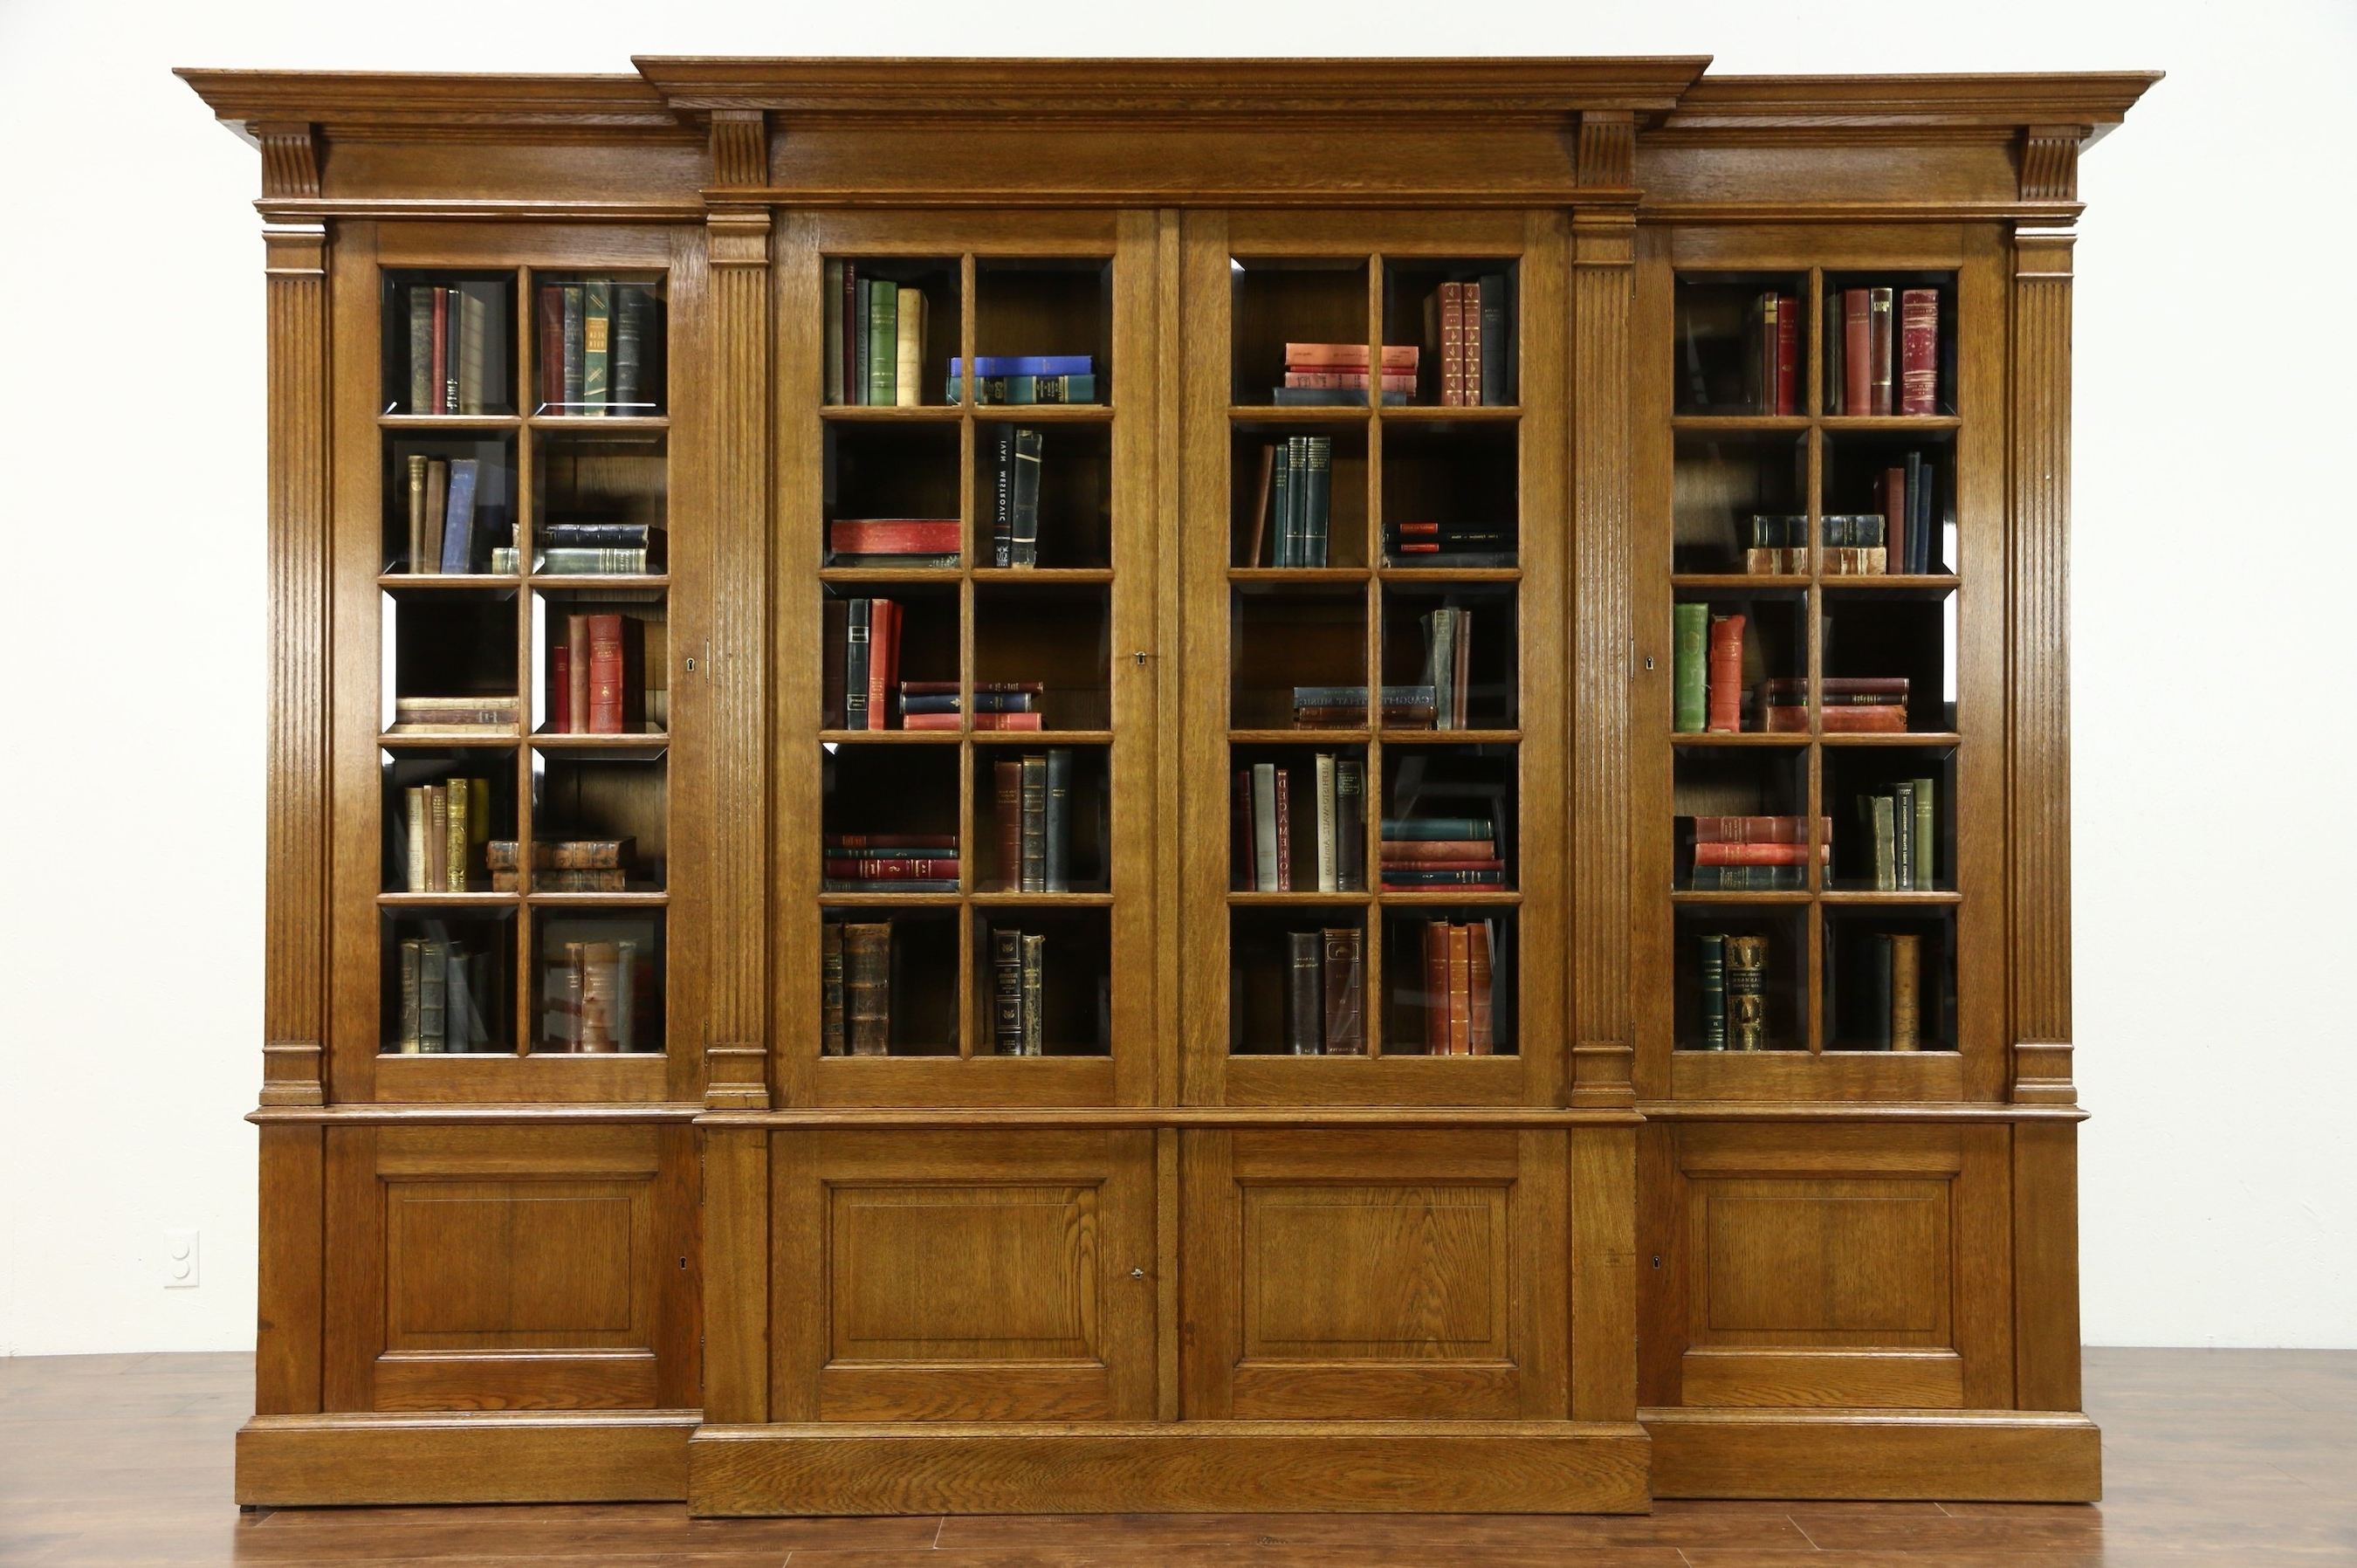 Sold – French Oak 1920's Antique 10' Library Bookcase, Beveled Intended For Most Popular Oak Library Bookcases (View 9 of 15)